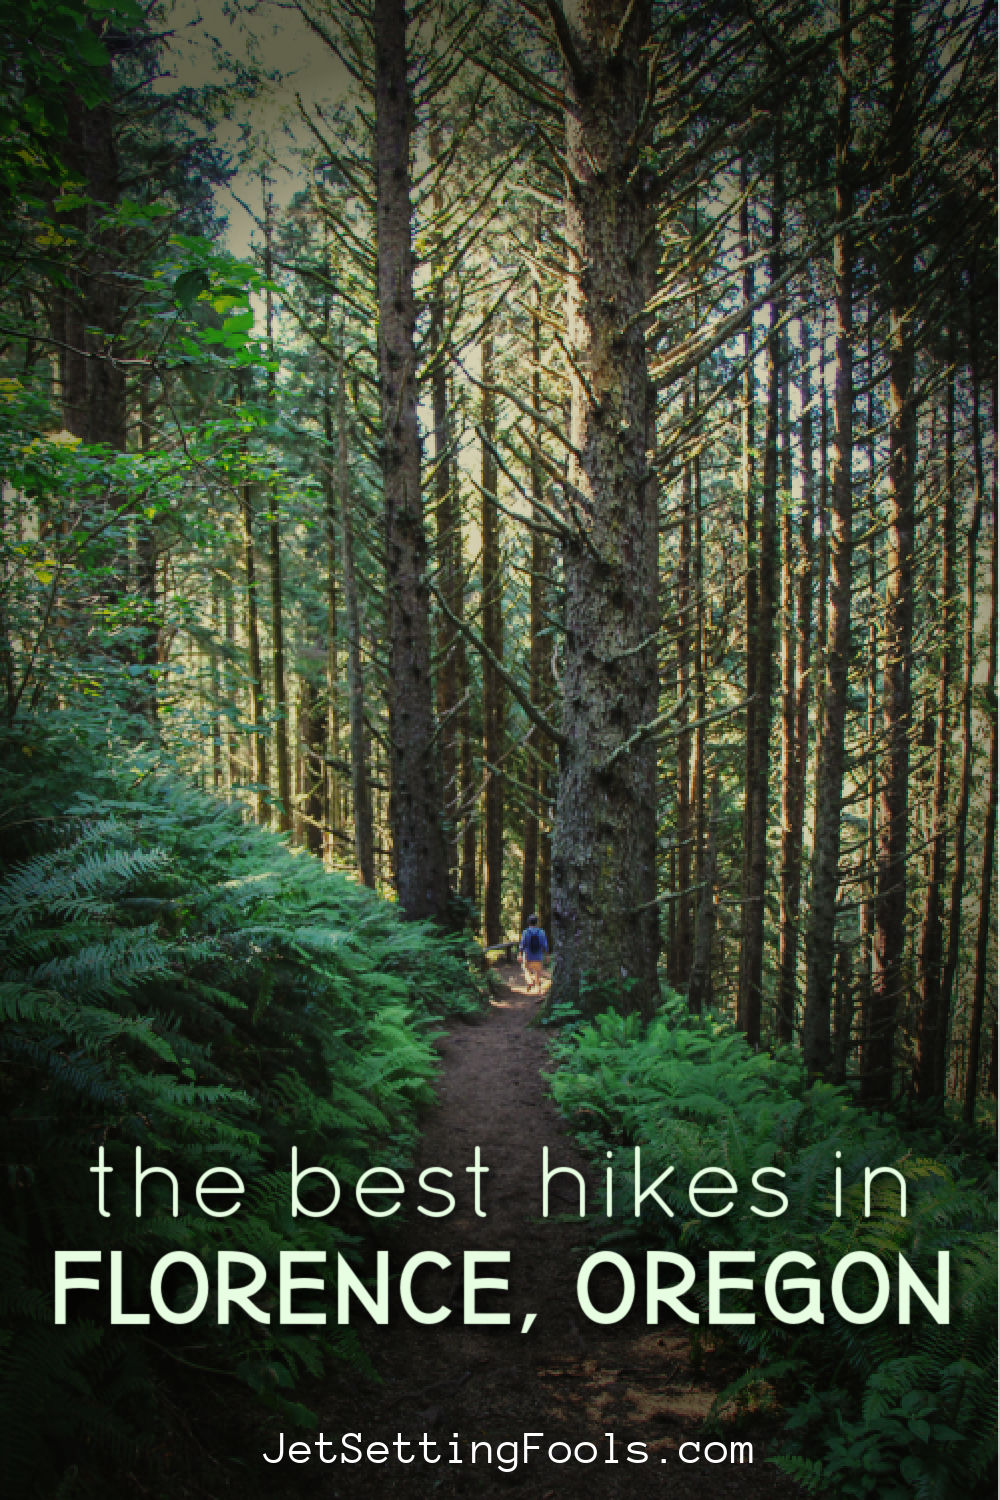 Best Hikes in Florence, OR by JetSettingFools.com